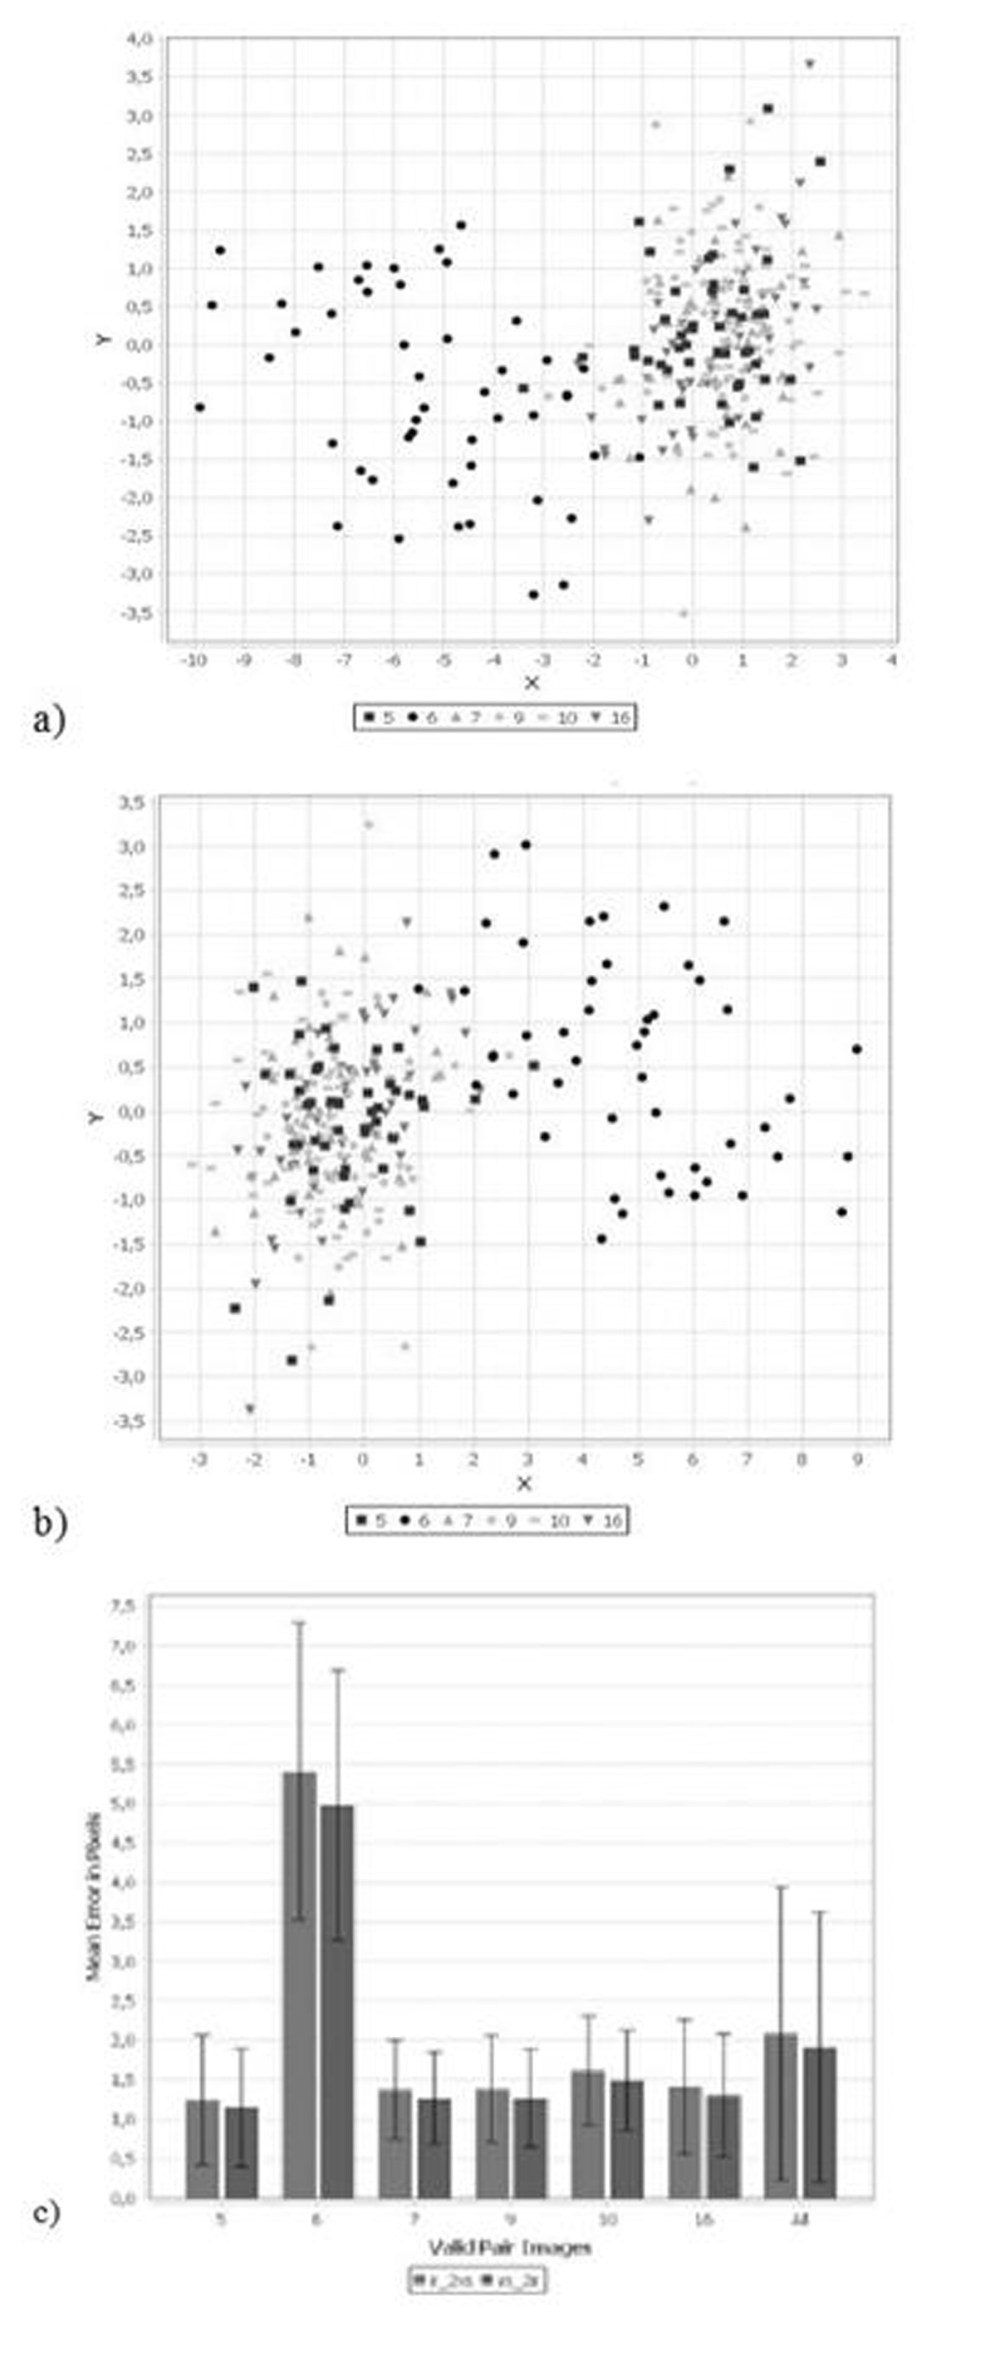 medium resolution of figure 3 a transfer error in pixels from infrared to visual spectrum image b transfer error en pixels from visual spectrum to infrared image c mean